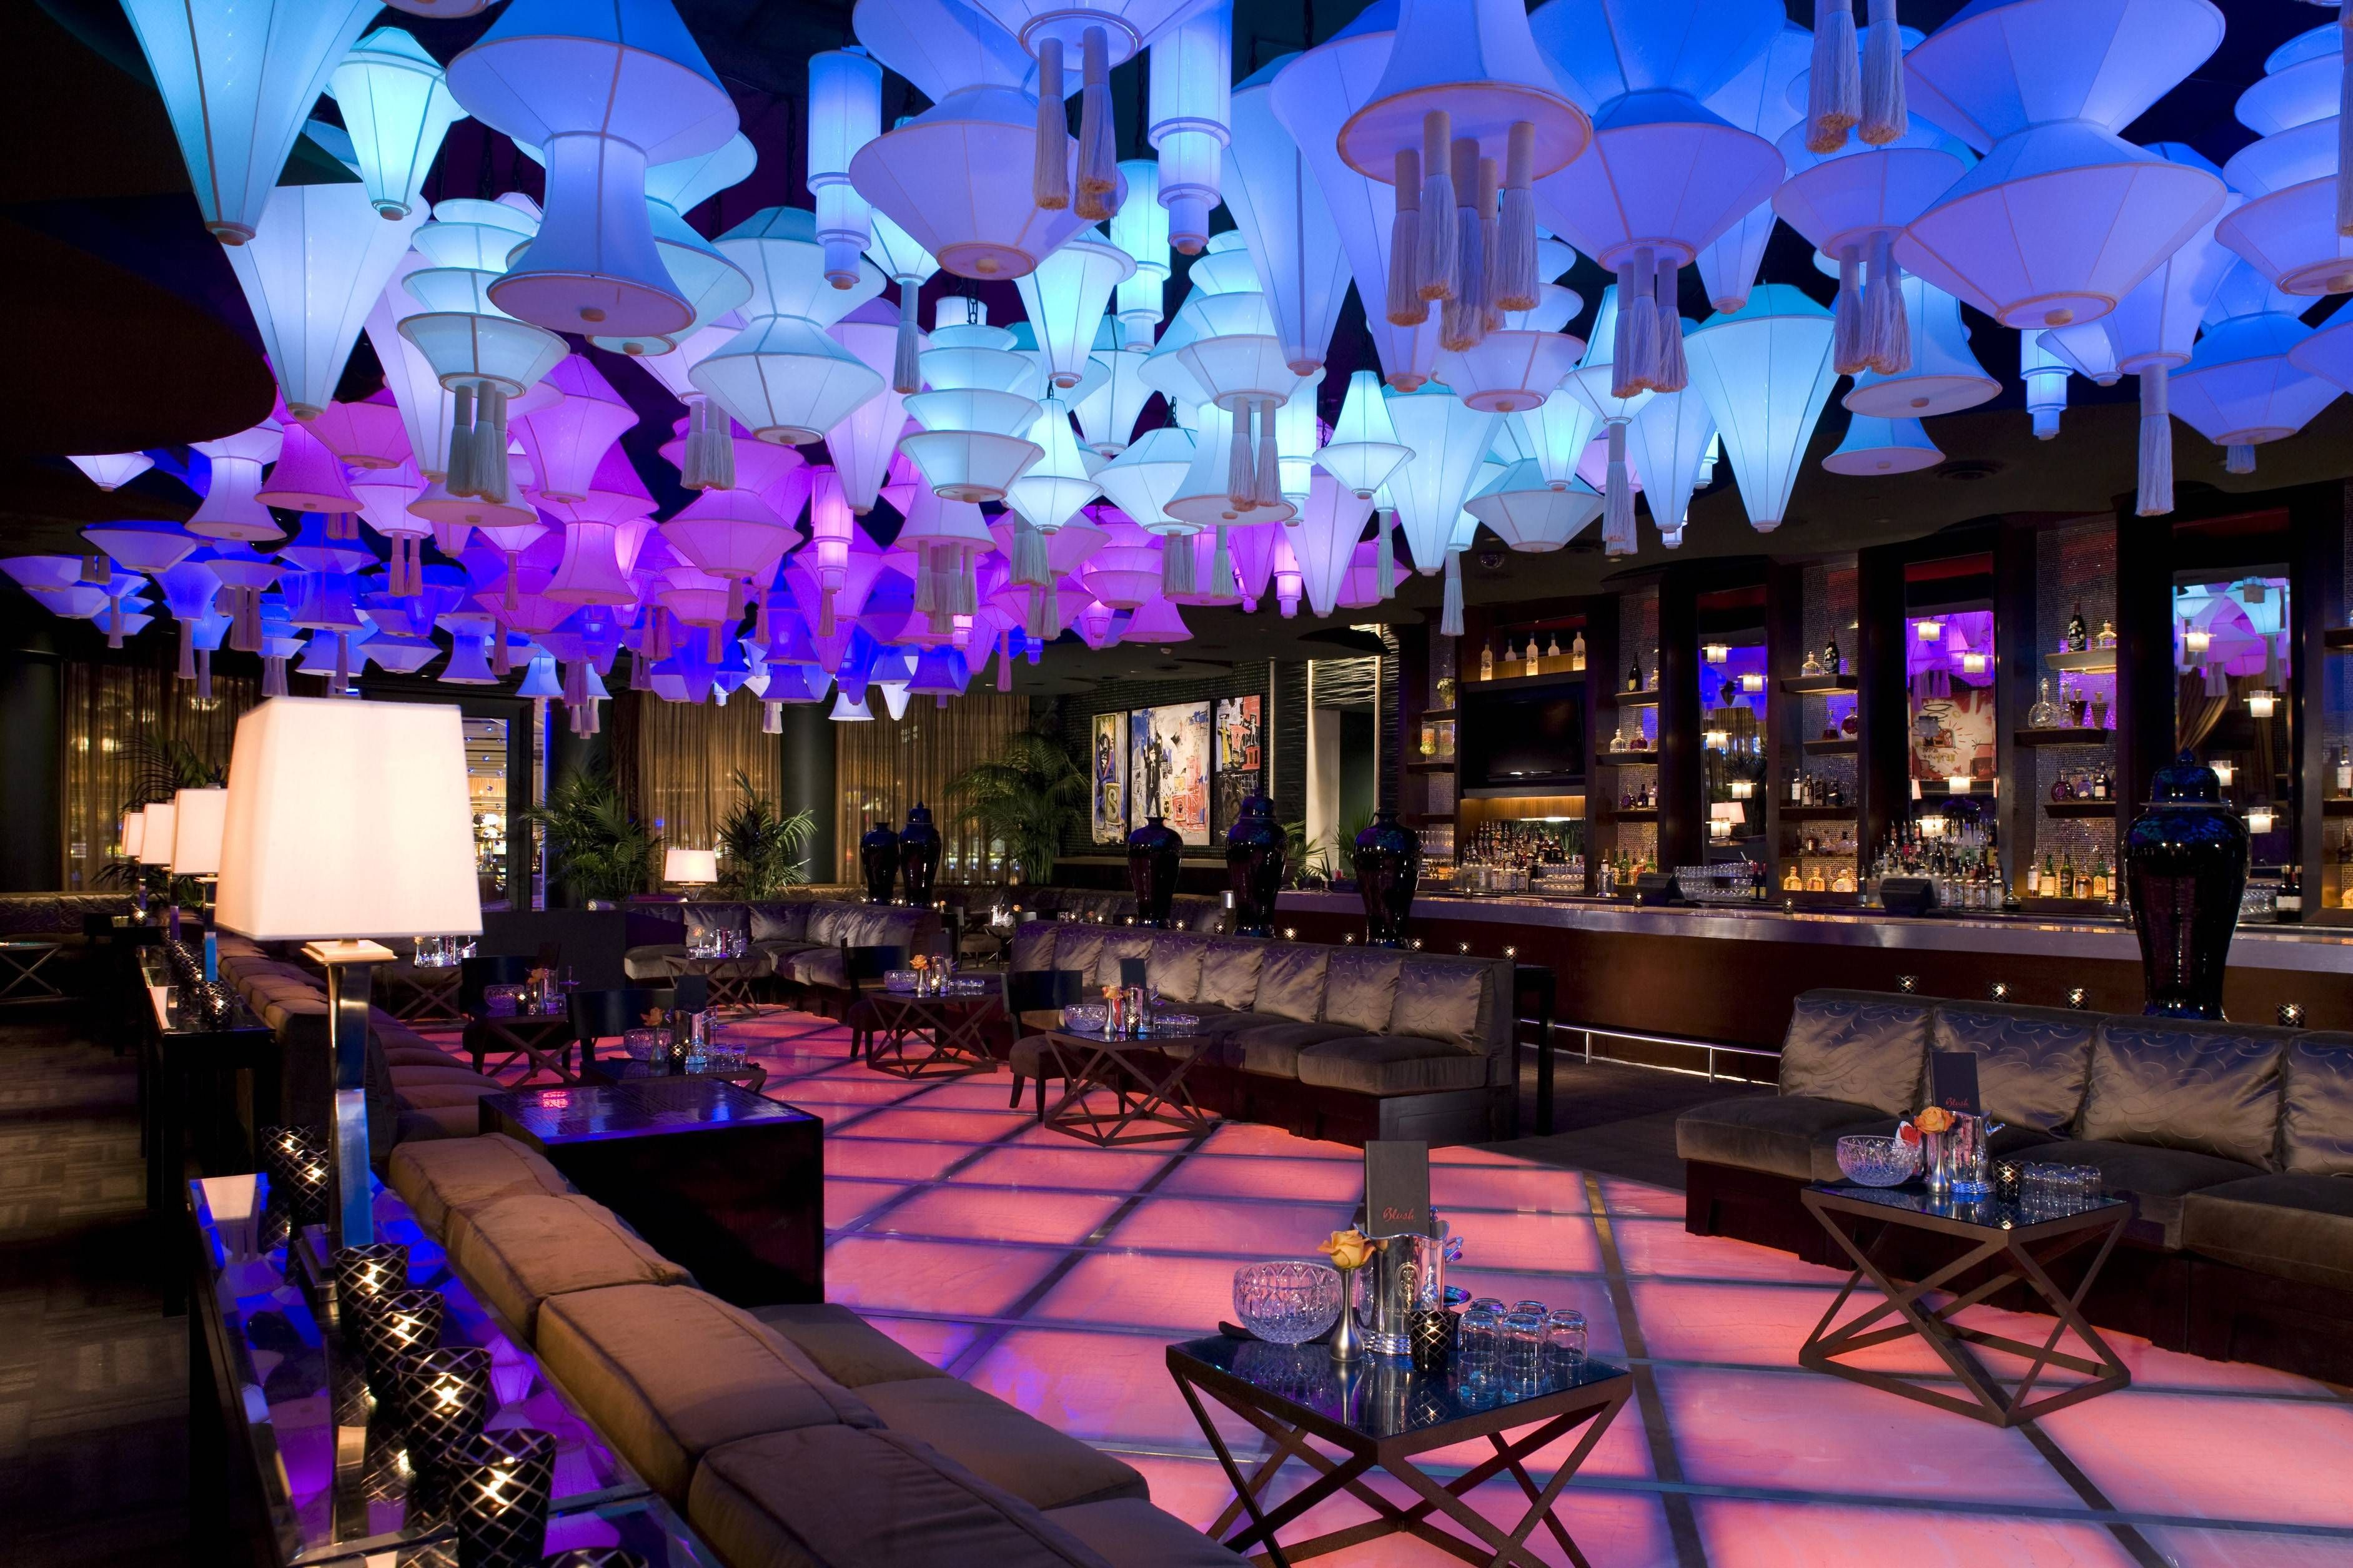 What Are The Hottest Nightclubs In Las Vegas?